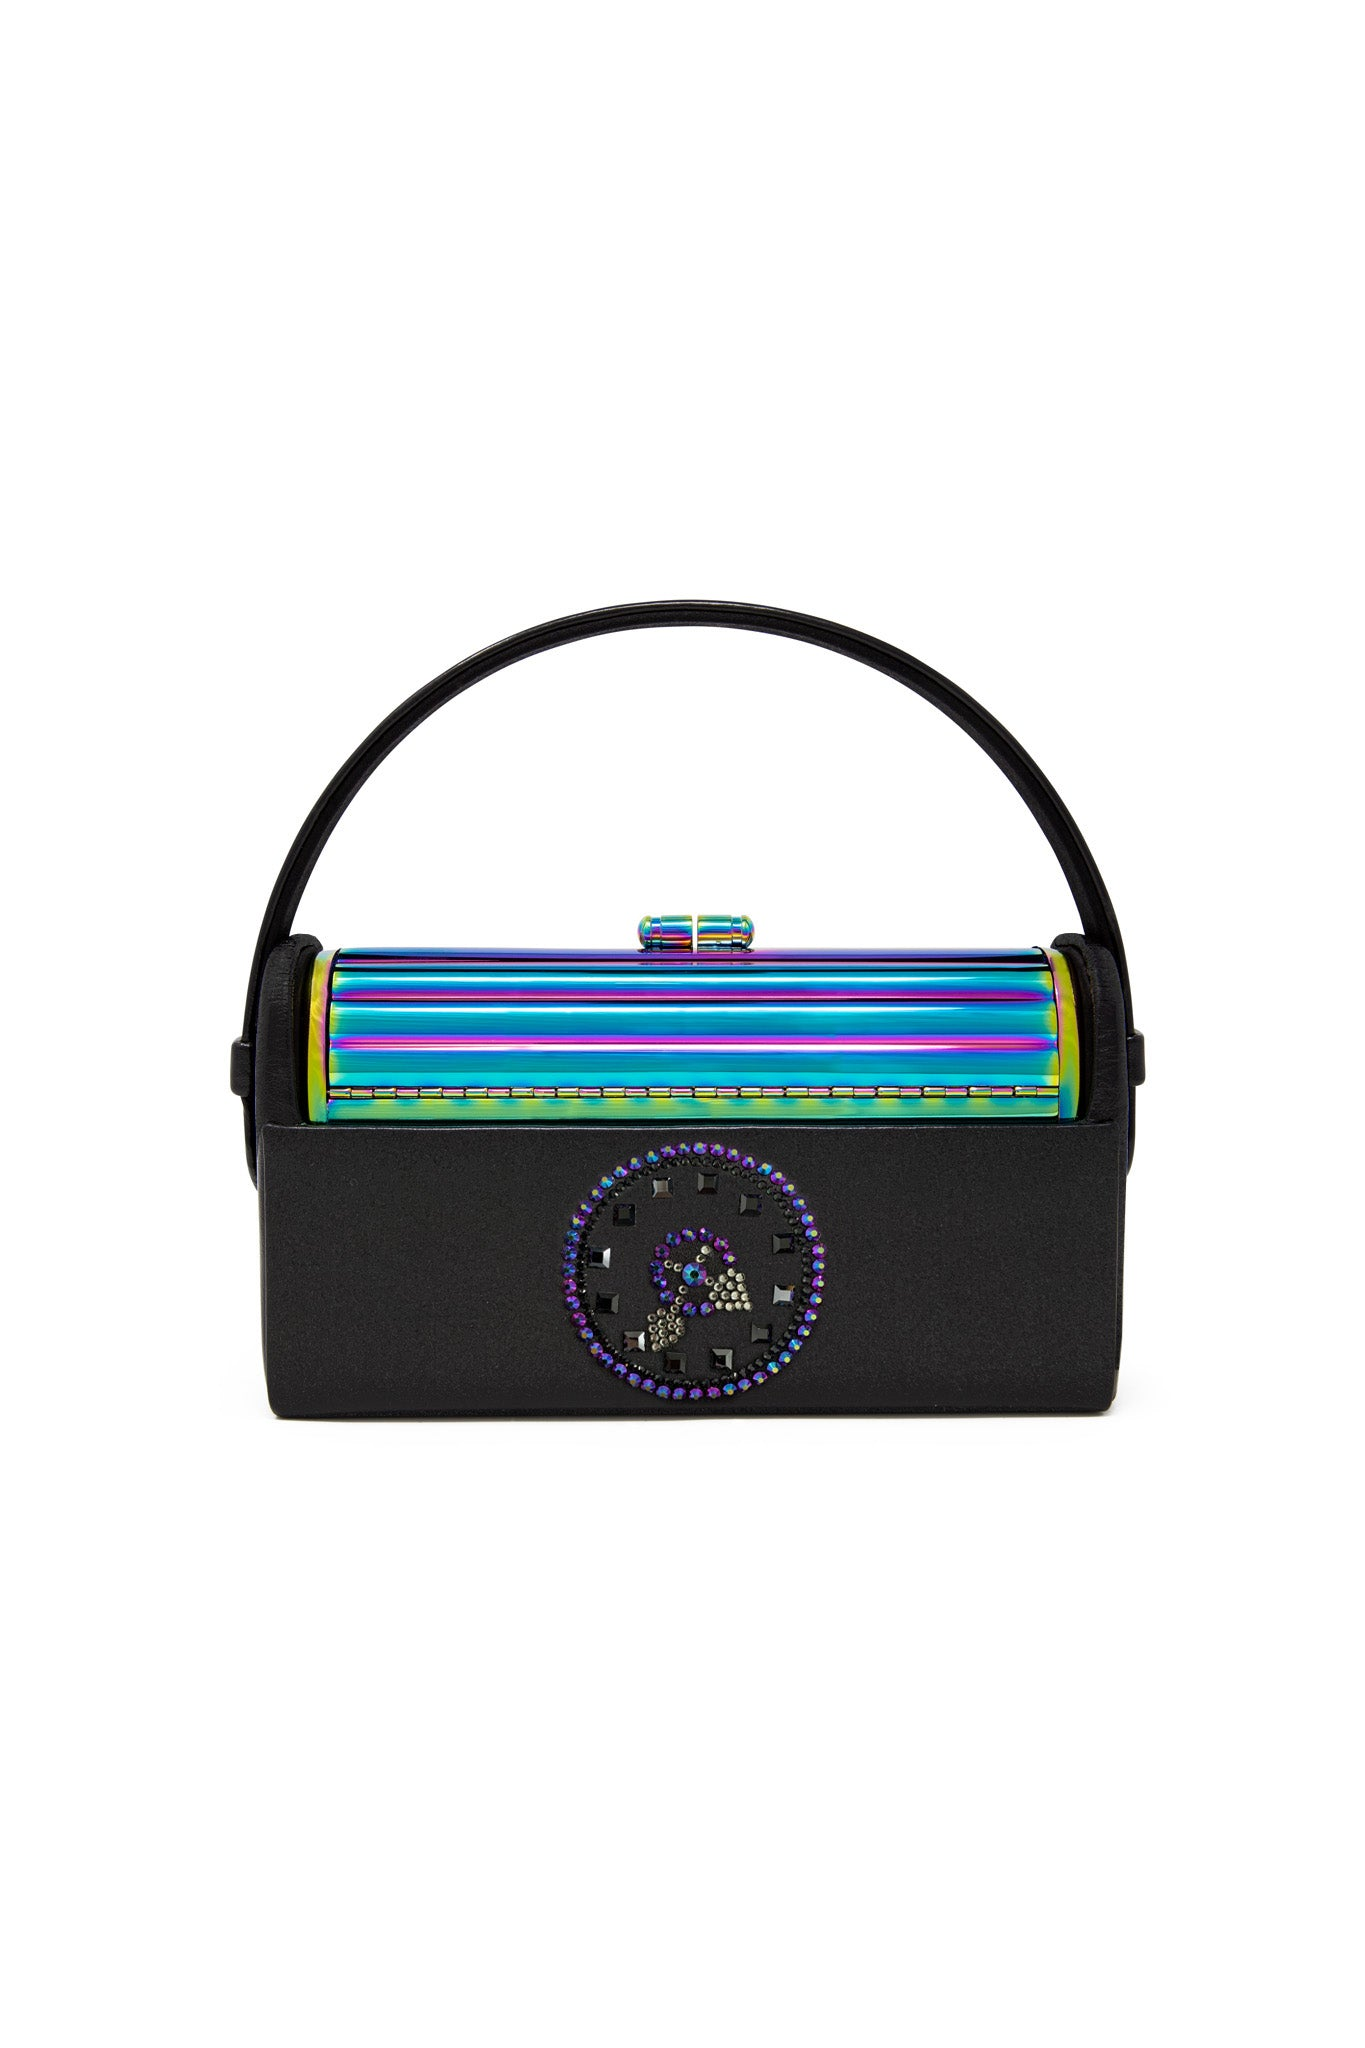 REGINE OILSLICK TUBULAR MINAUDIERE WITH BLACK SATIN CASE AND IRIDESCENT SWAROVSKI CRYSTAL CLOCK DETAIL BY RYAN METTZ